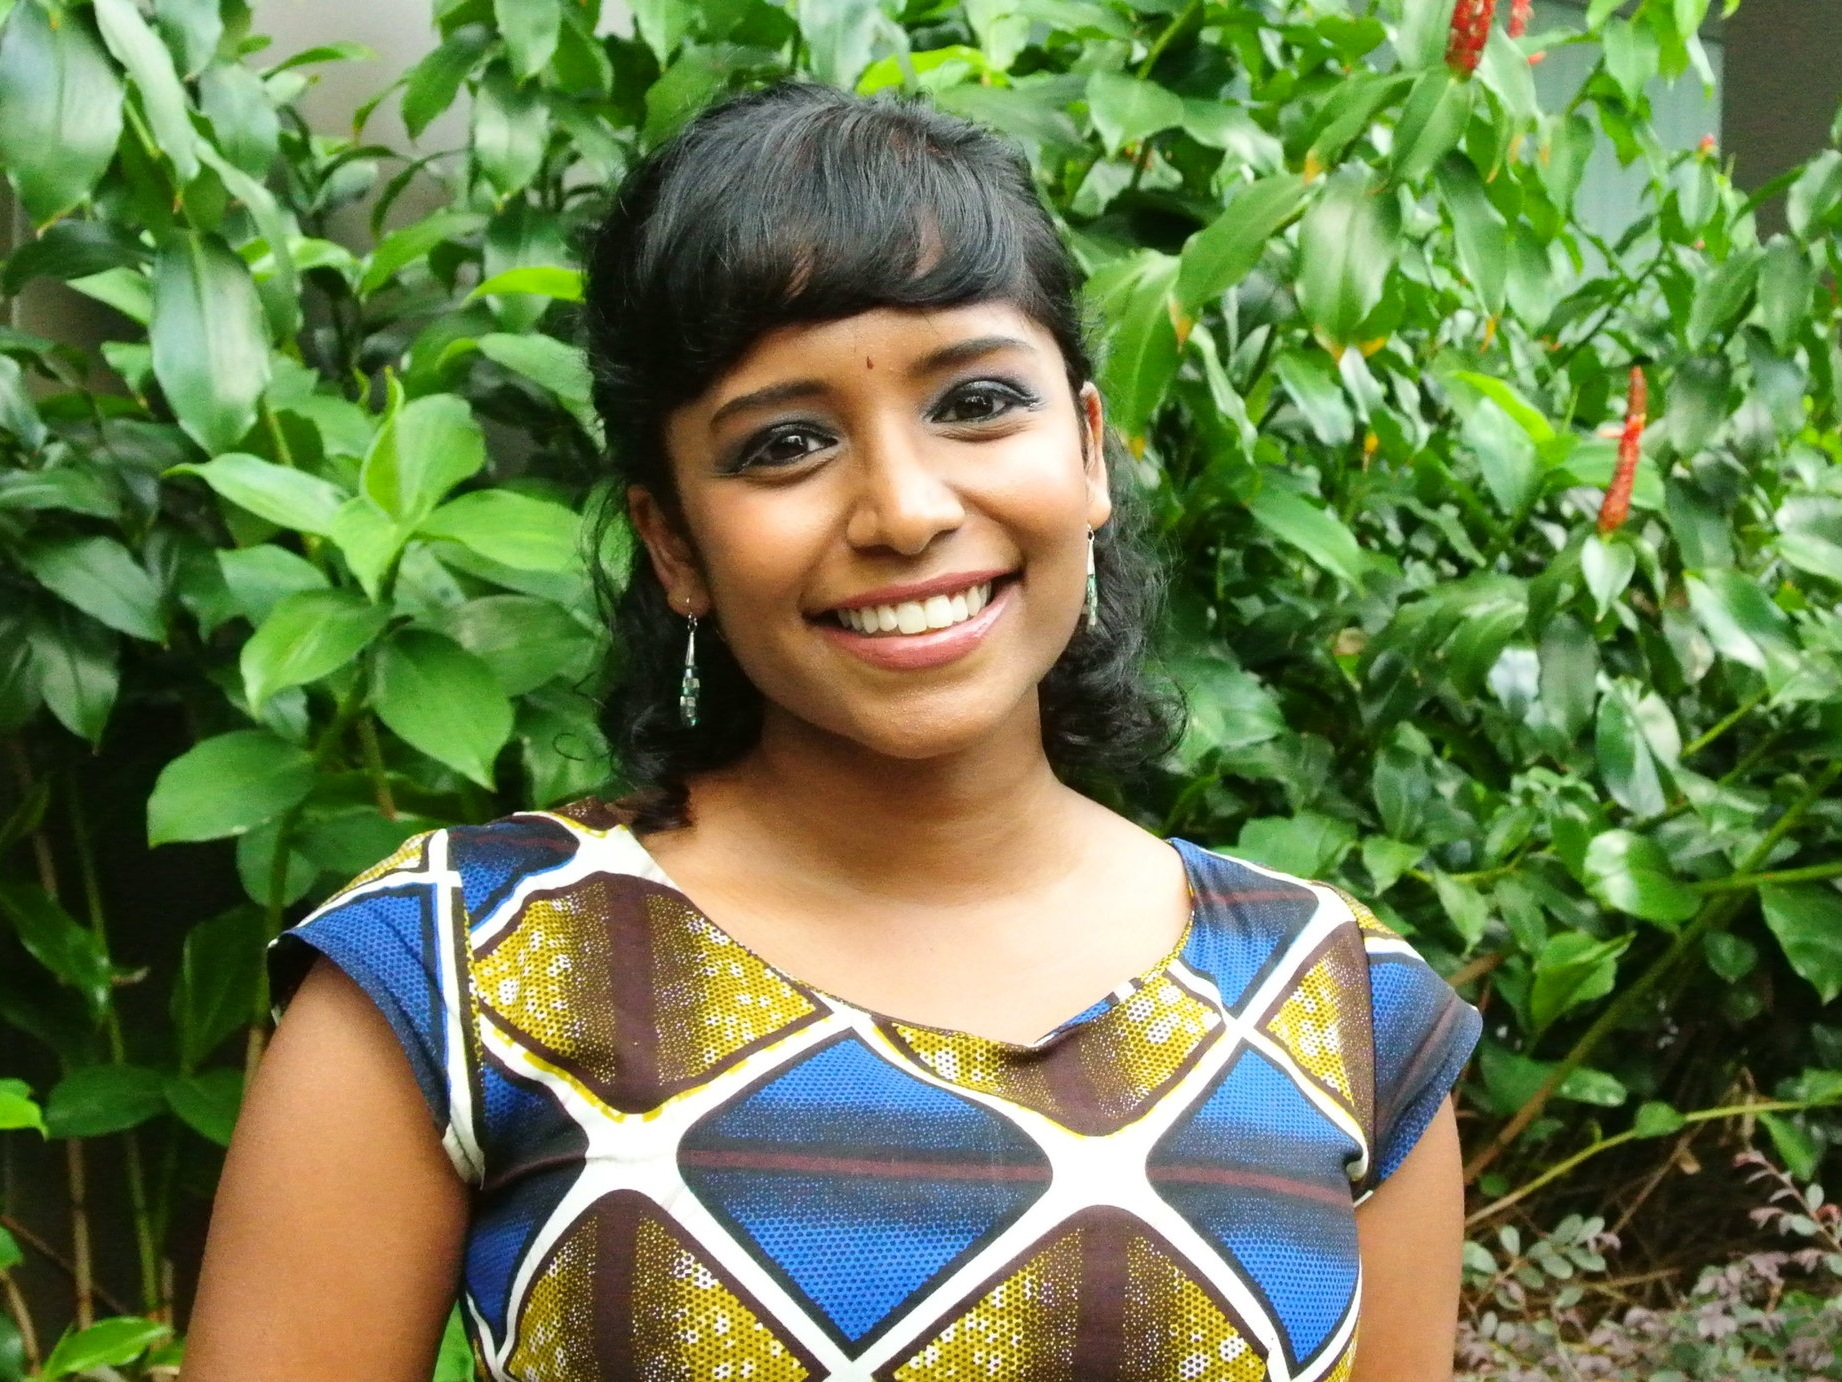 Madhumitha Ardhanari - Sustainability strategist and researcher, Forum for the FutureNationality: SingaporeanLiving in: SingaporeFields of work: Environment/sustainable development, human rights, technology, food systems and security